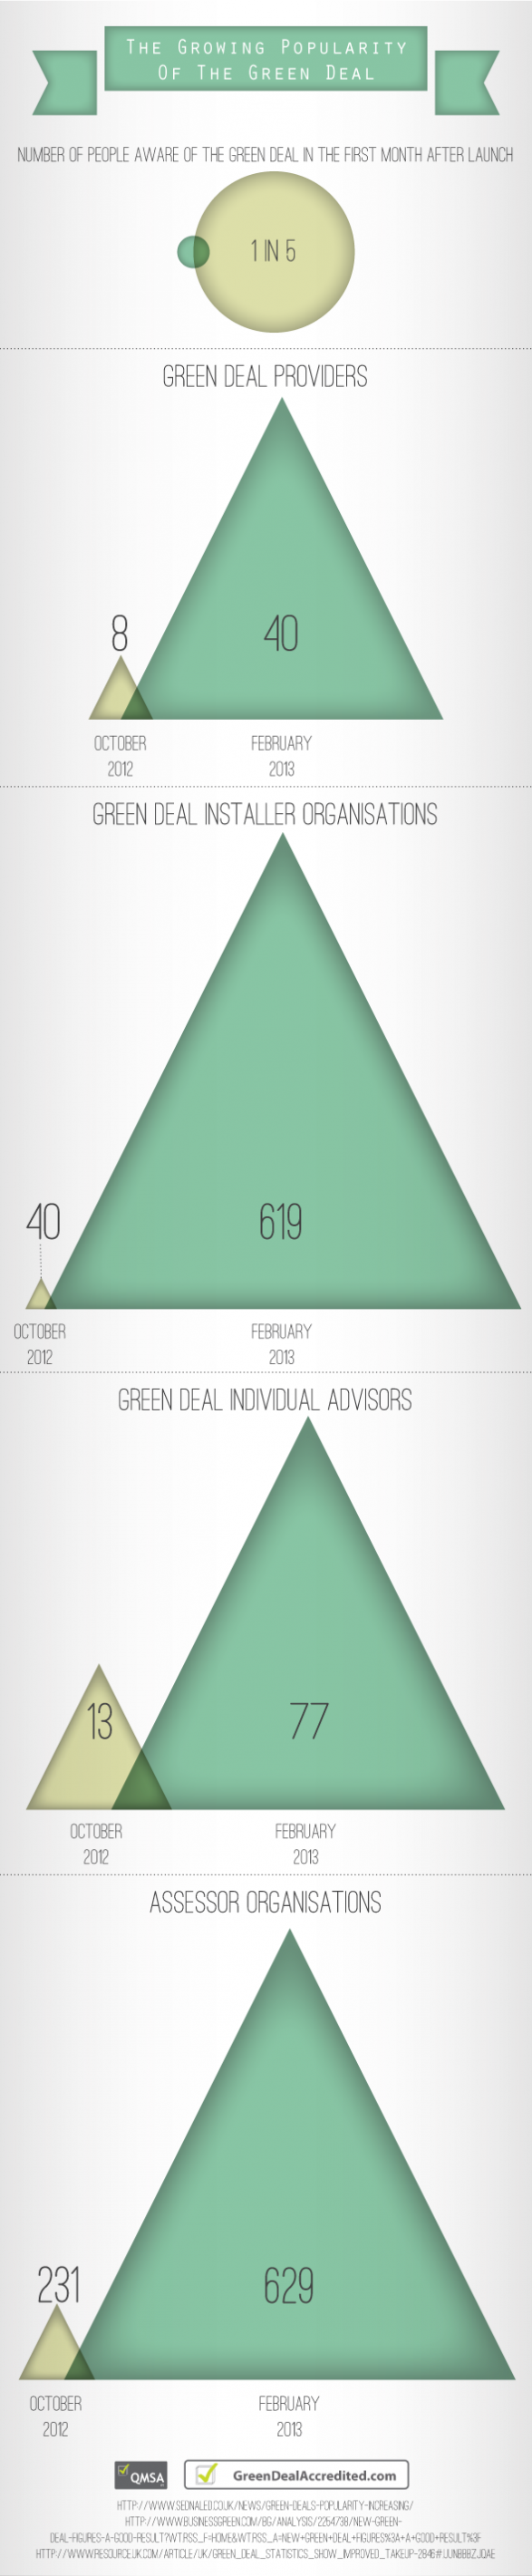 The Growing Popularity Of The Green Deal